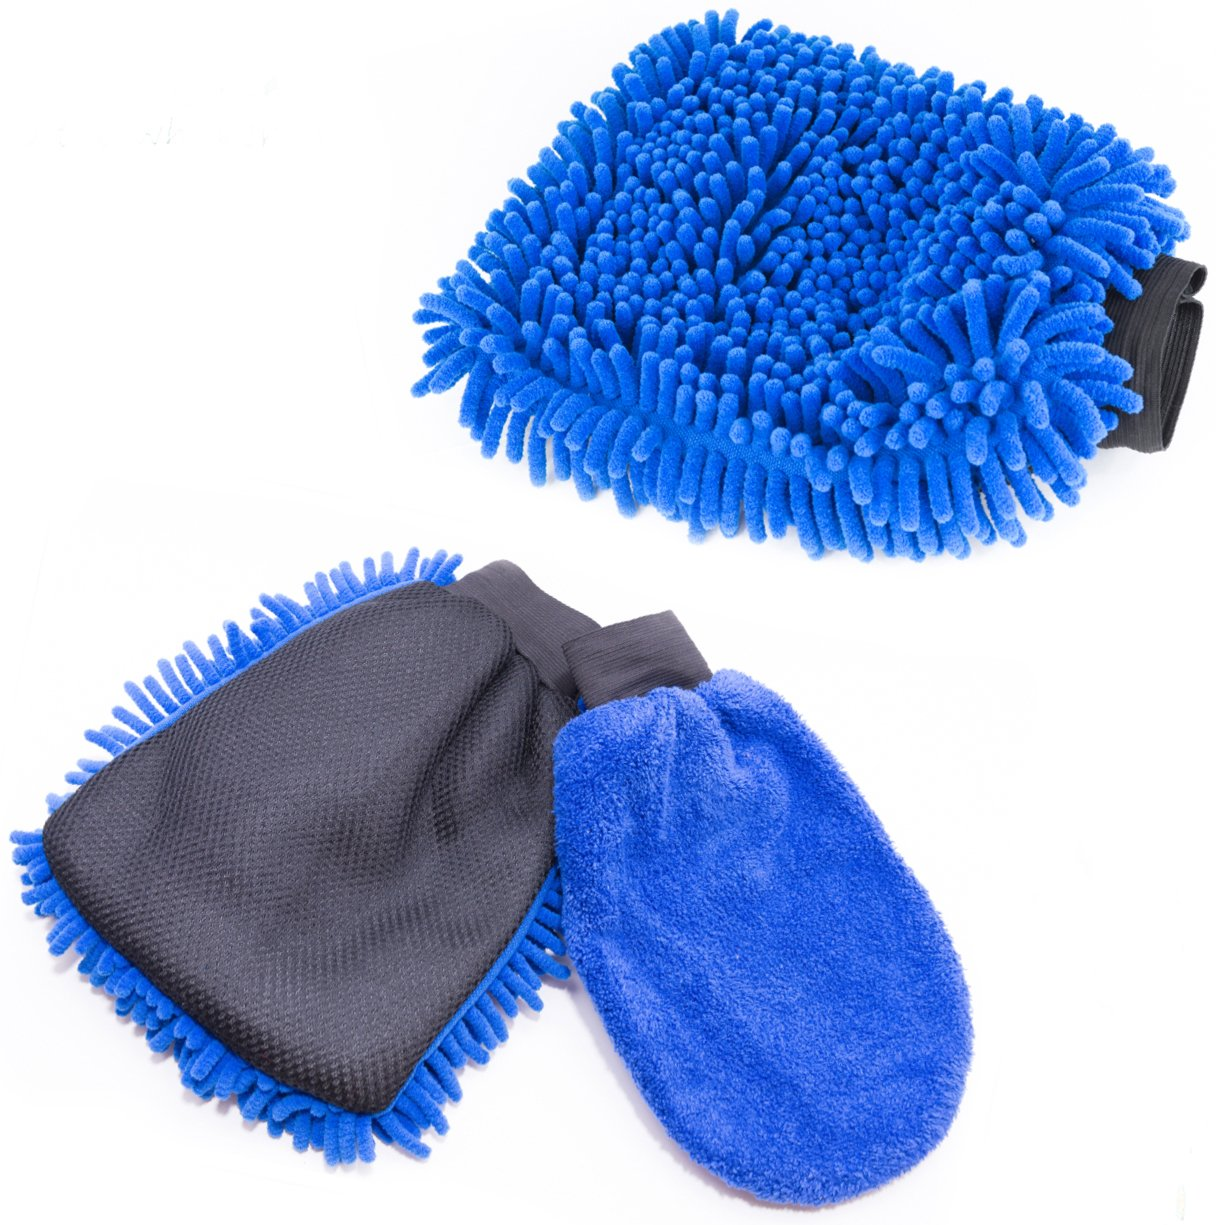 - Classic Car Accessories Gift Set Car Wash Mitt /& Duster Bonus Dust /& Dry Mitt Included 2 Blue Mitts Dual-Sided Microfiber Washing Glove with Non-Scratch Scrubber Sponge on the Other Side